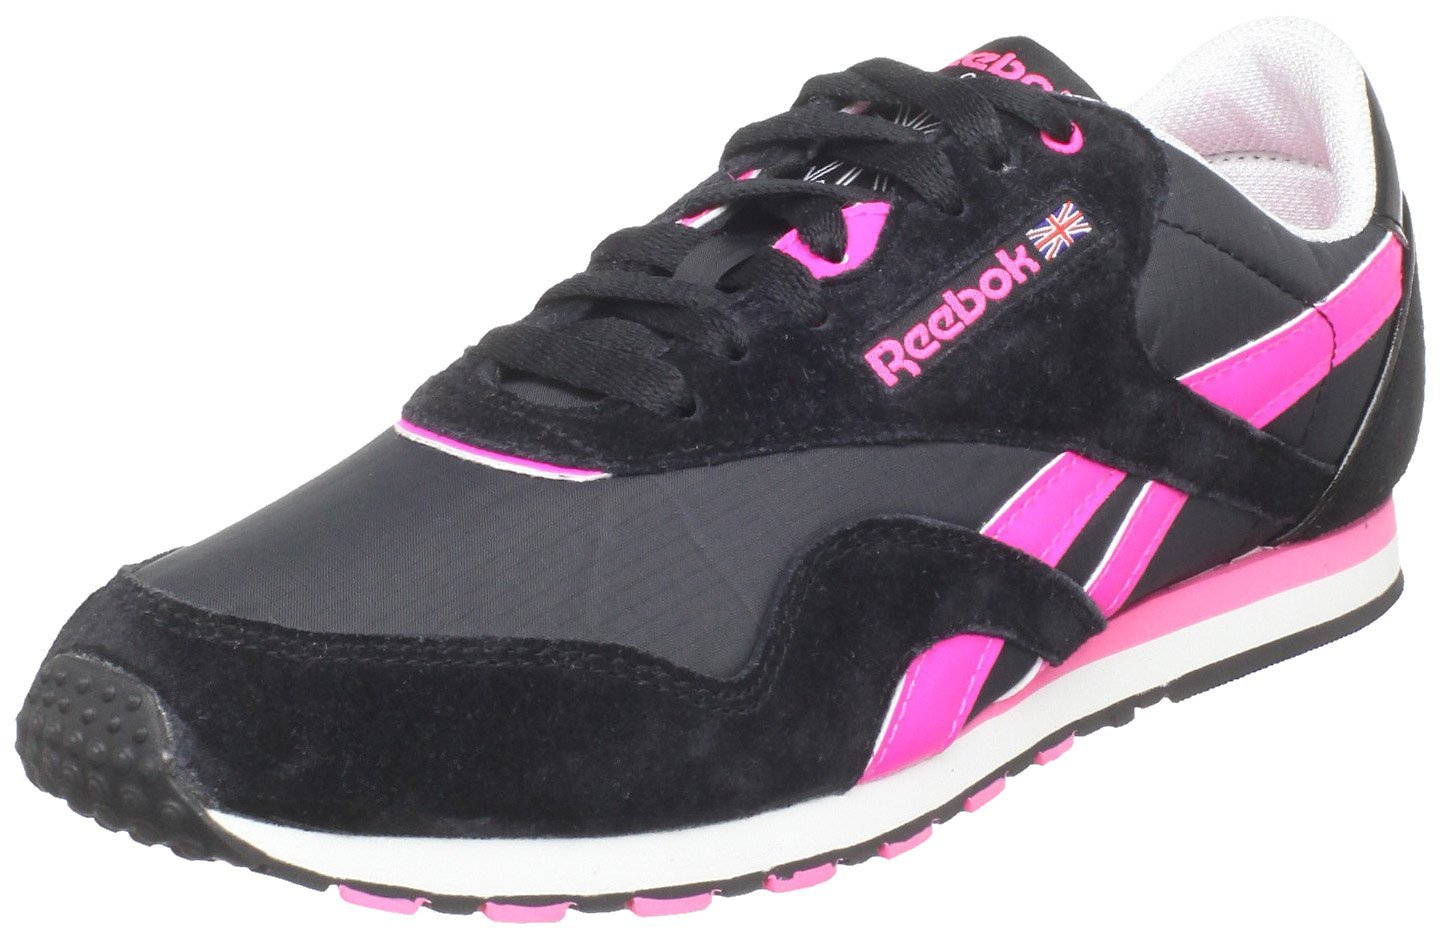 reebok classic nylon slim lace up fashion sneaker in black. Black Bedroom Furniture Sets. Home Design Ideas